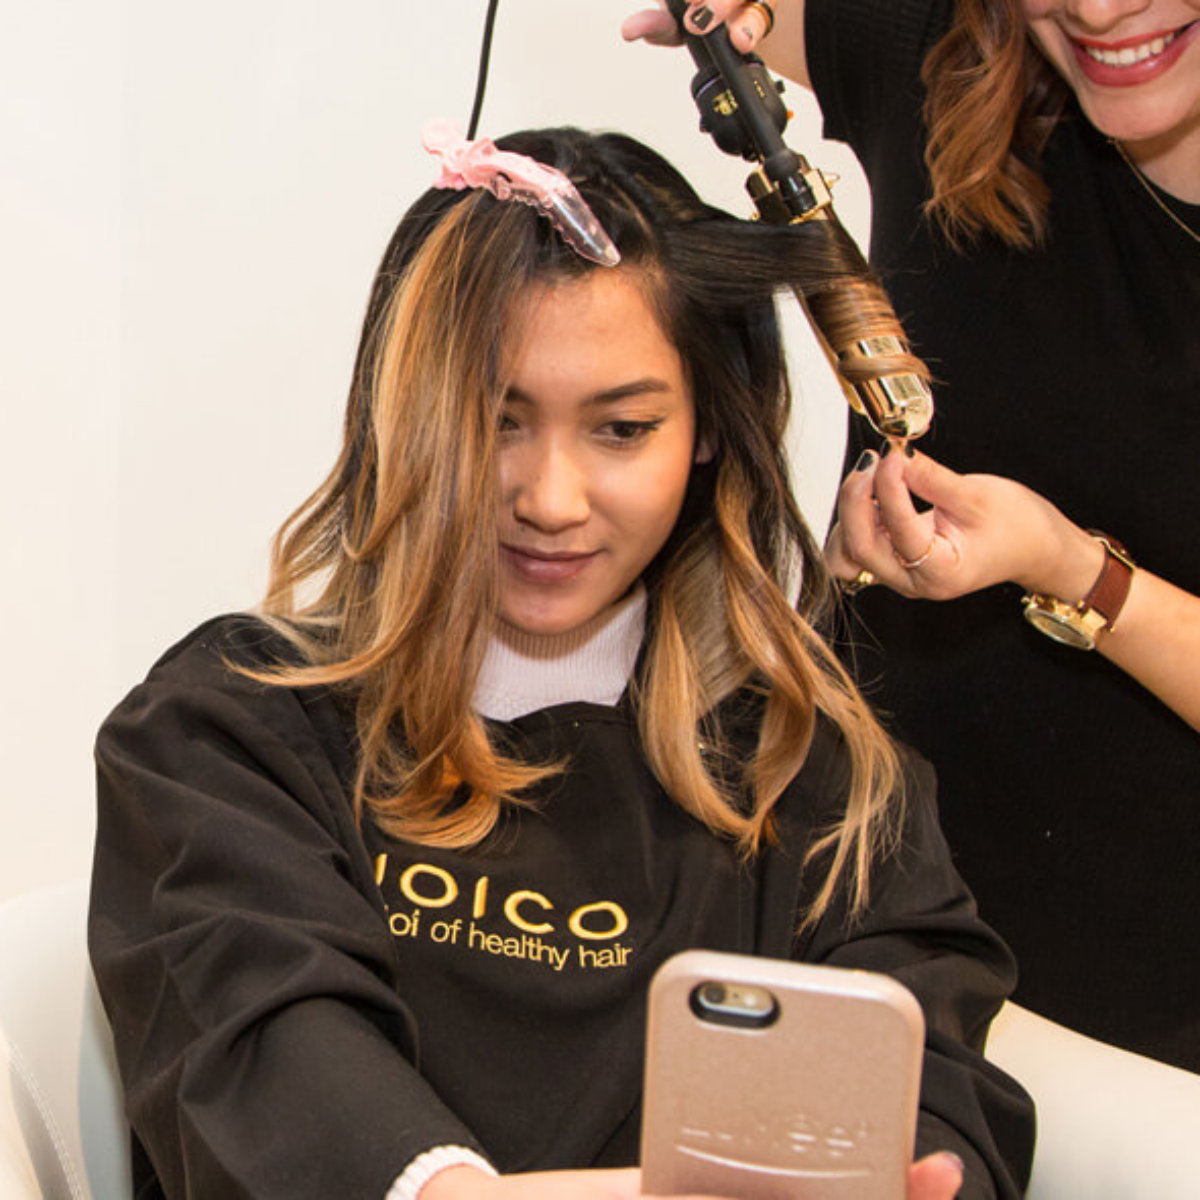 Womens hair being curled by a hairstylist